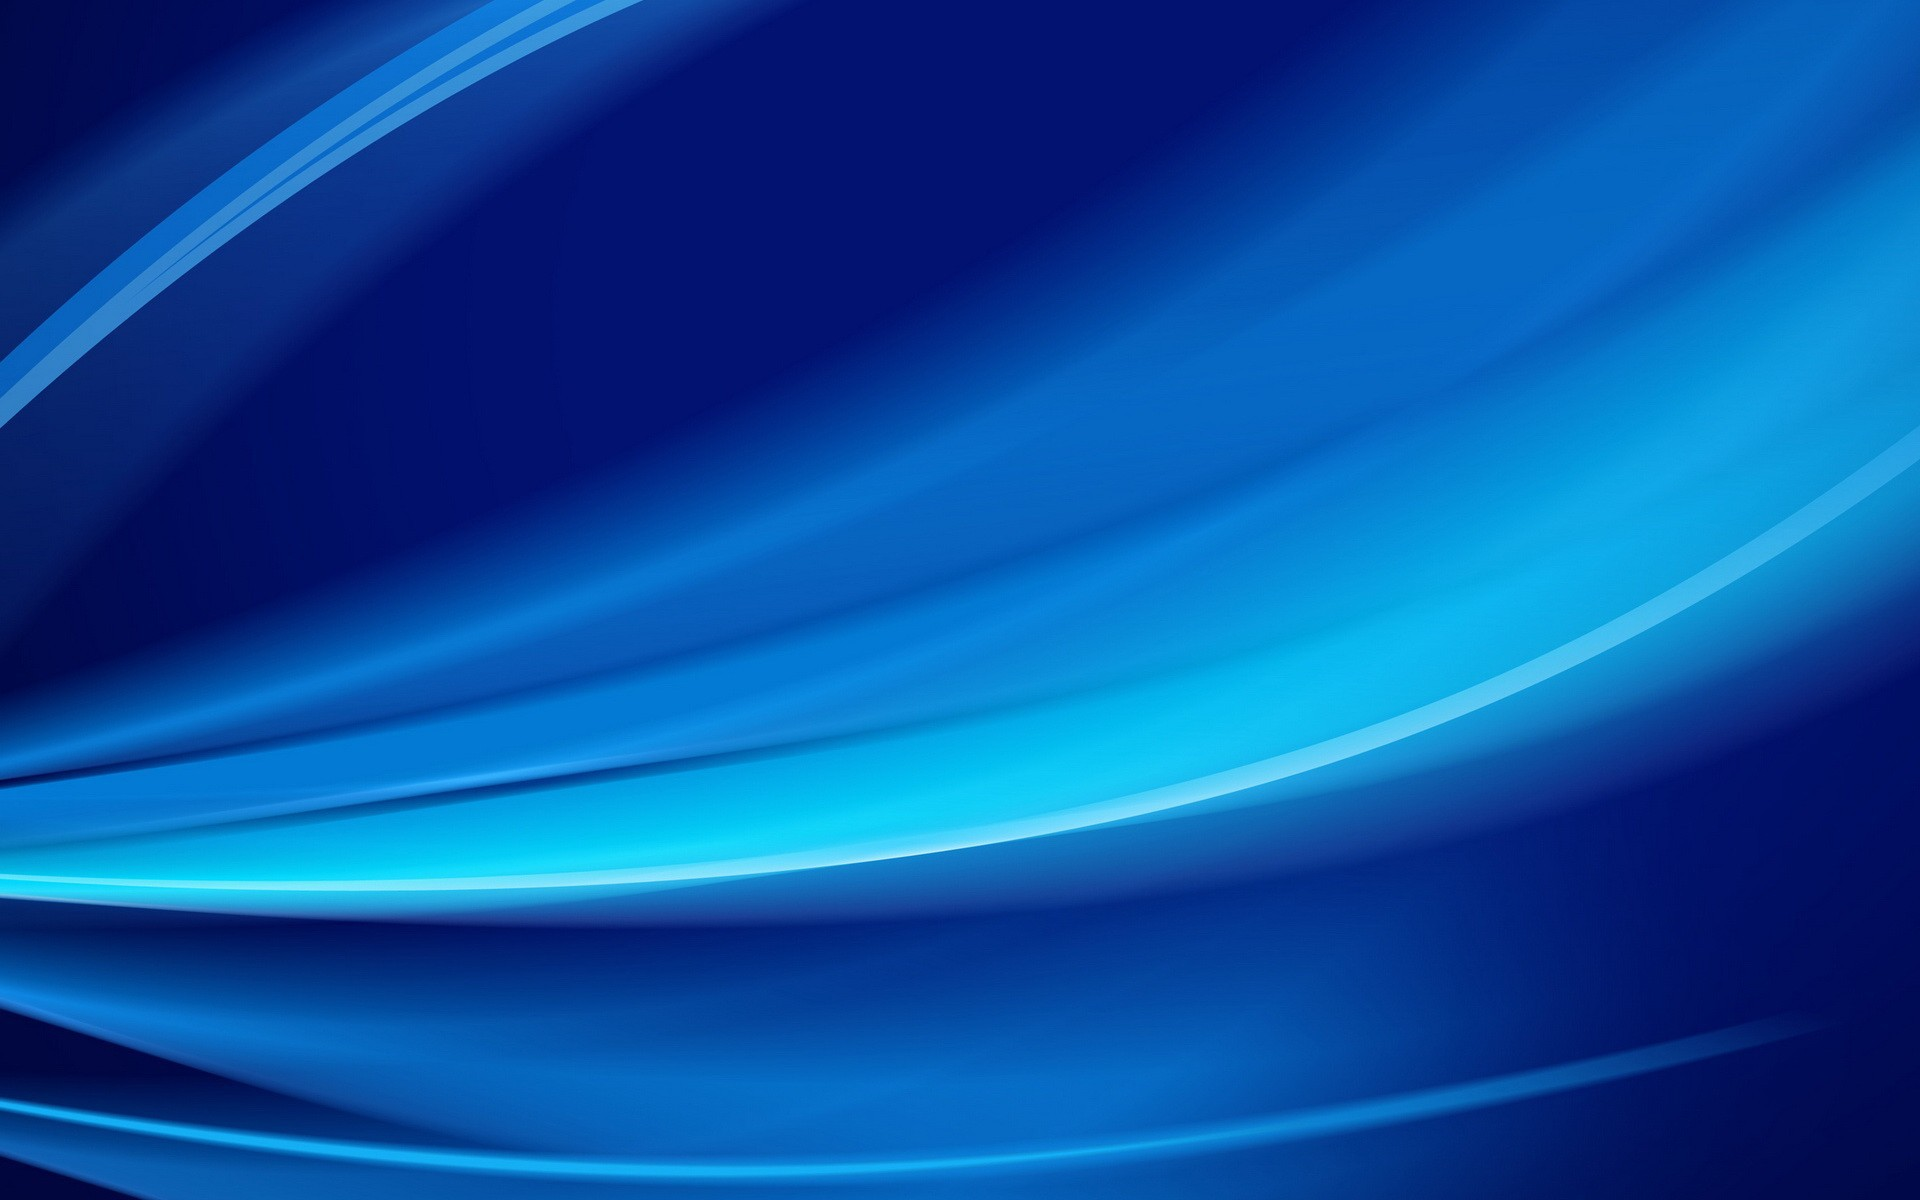 Abstract blue ios 7 wallpaper wallpapers and images   wallpapers 1920x1200